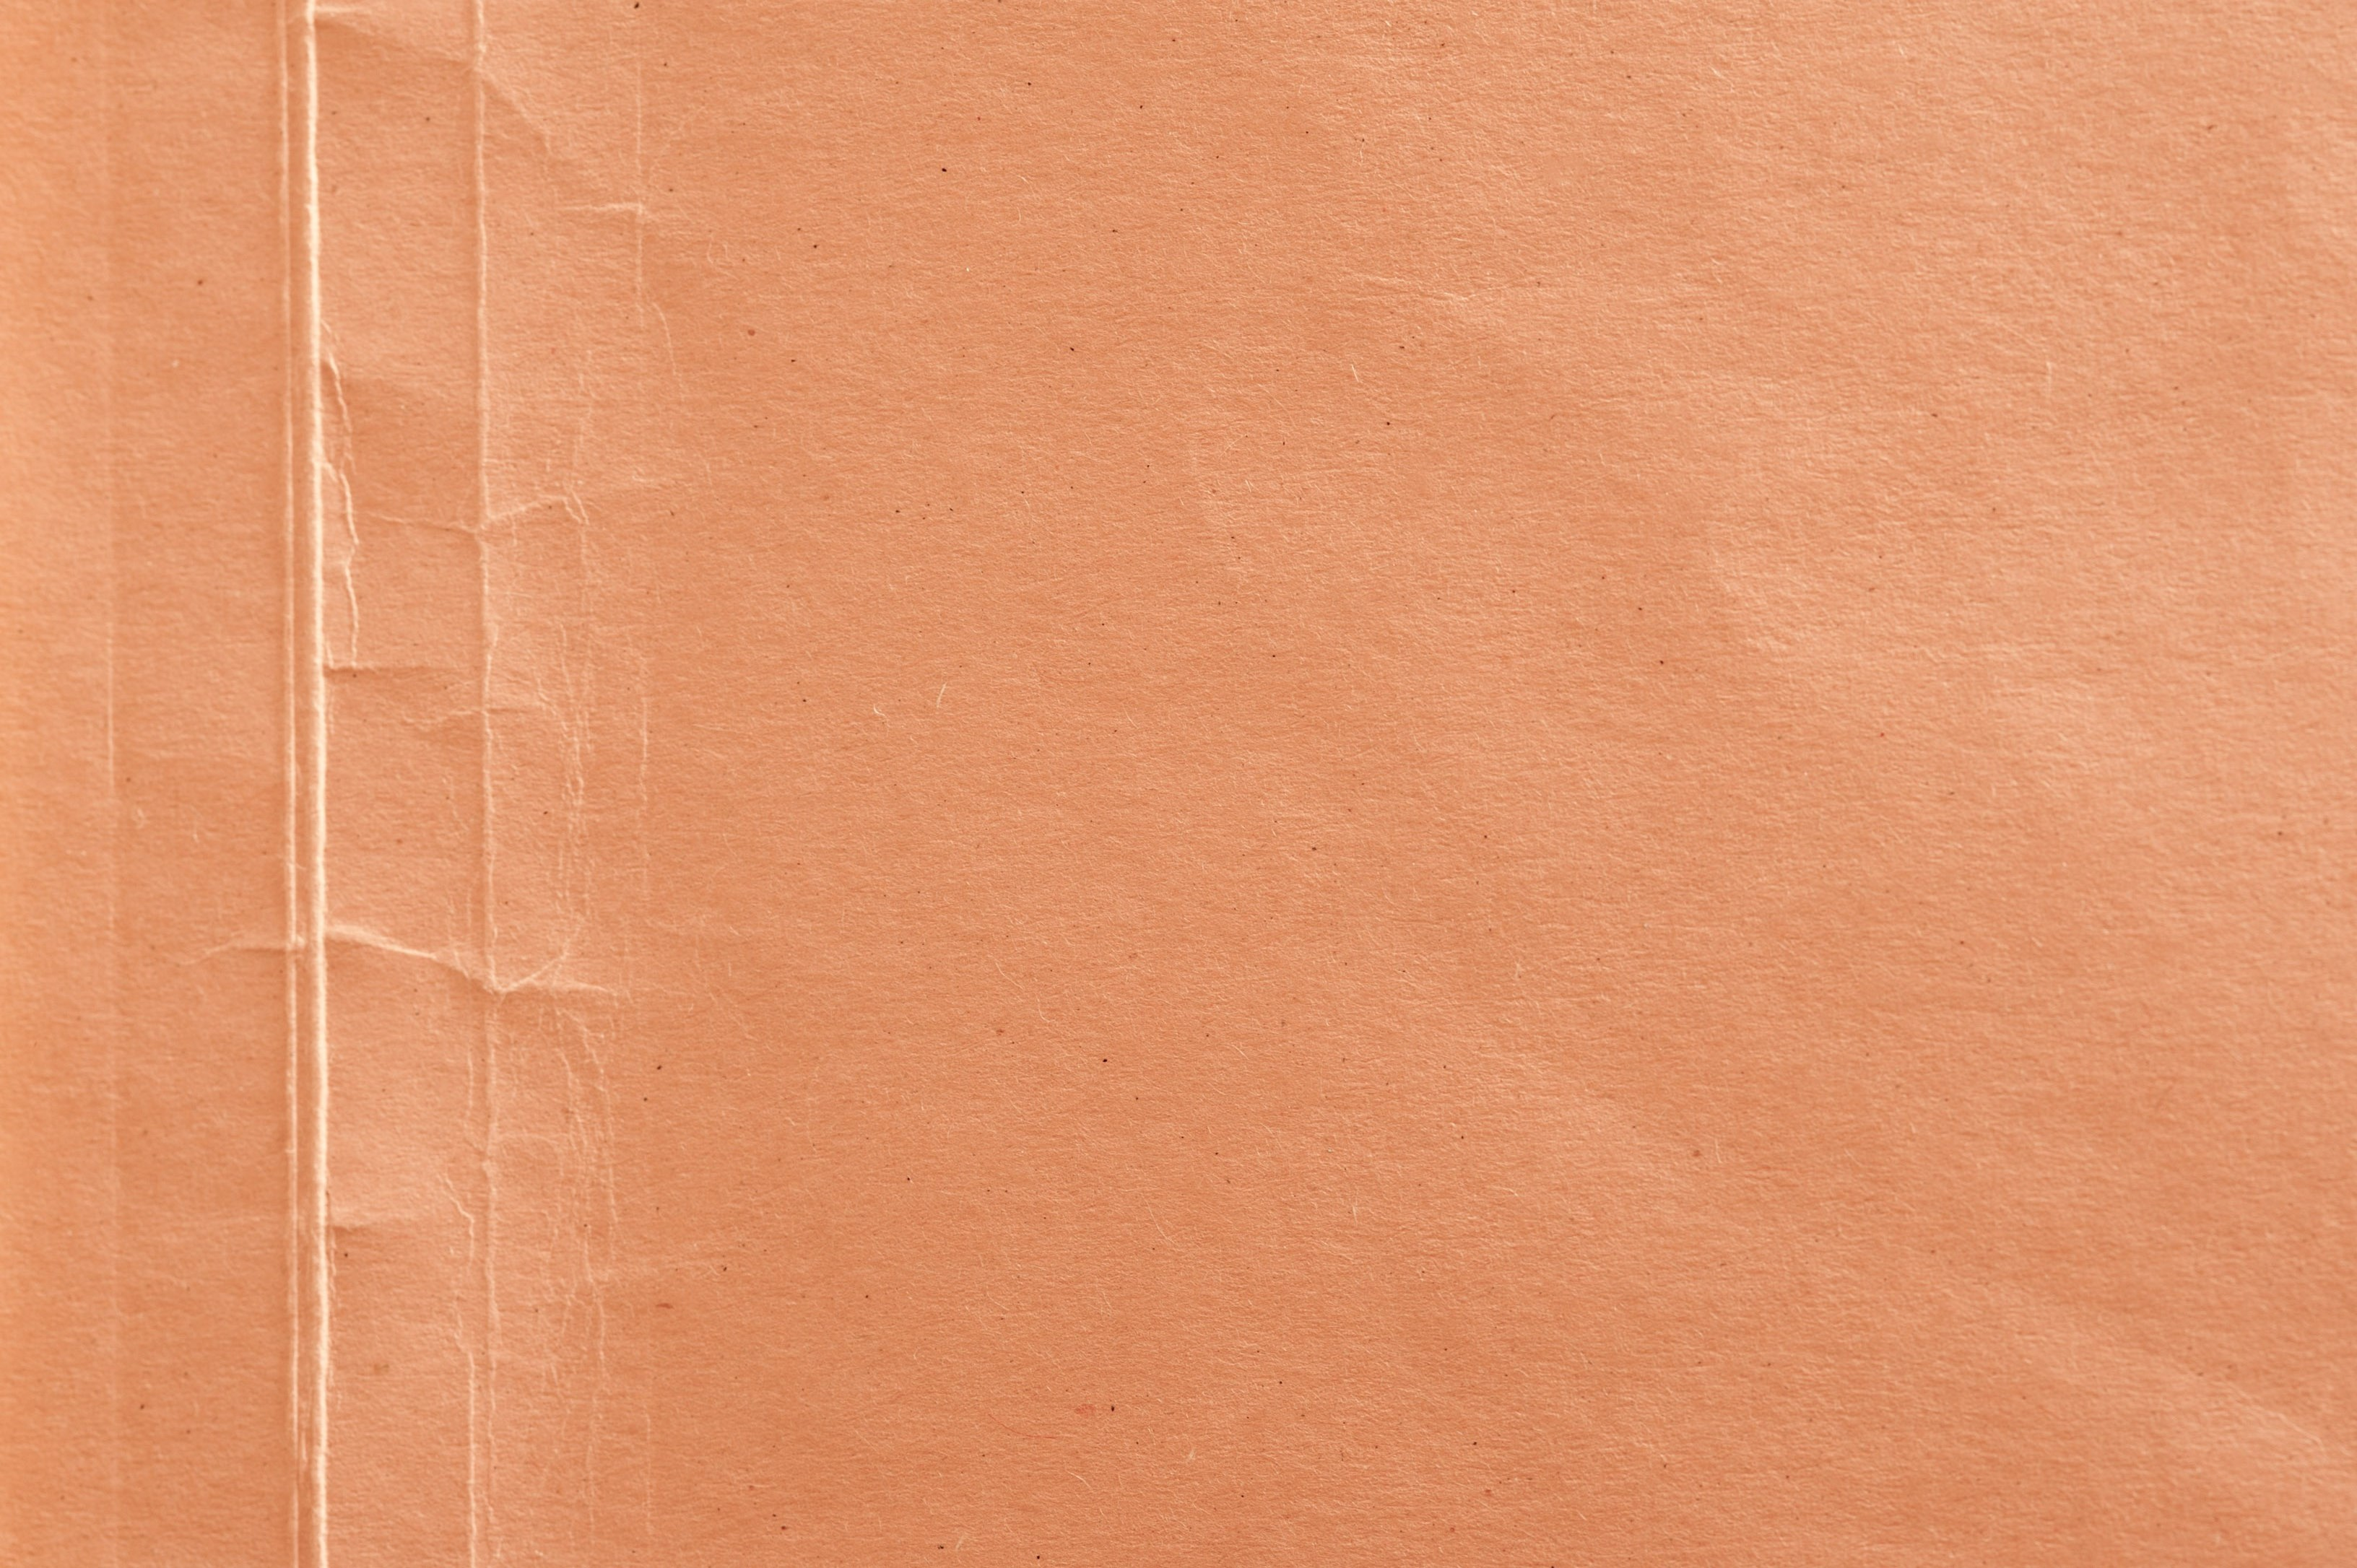 creased folded orange card texture